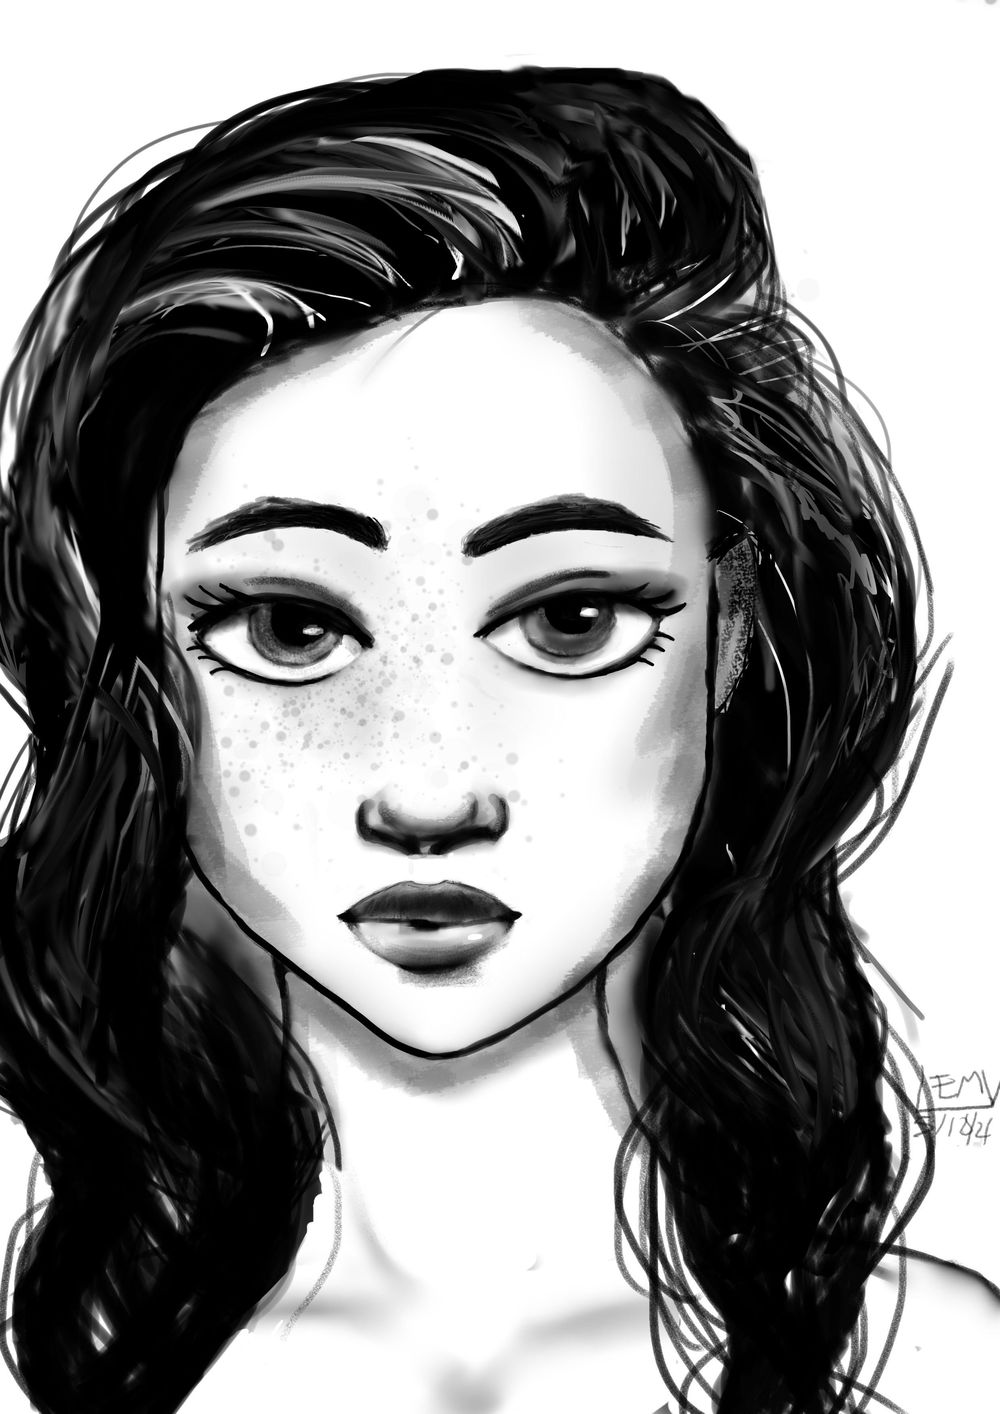 Portrait of a girl - image 1 - student project